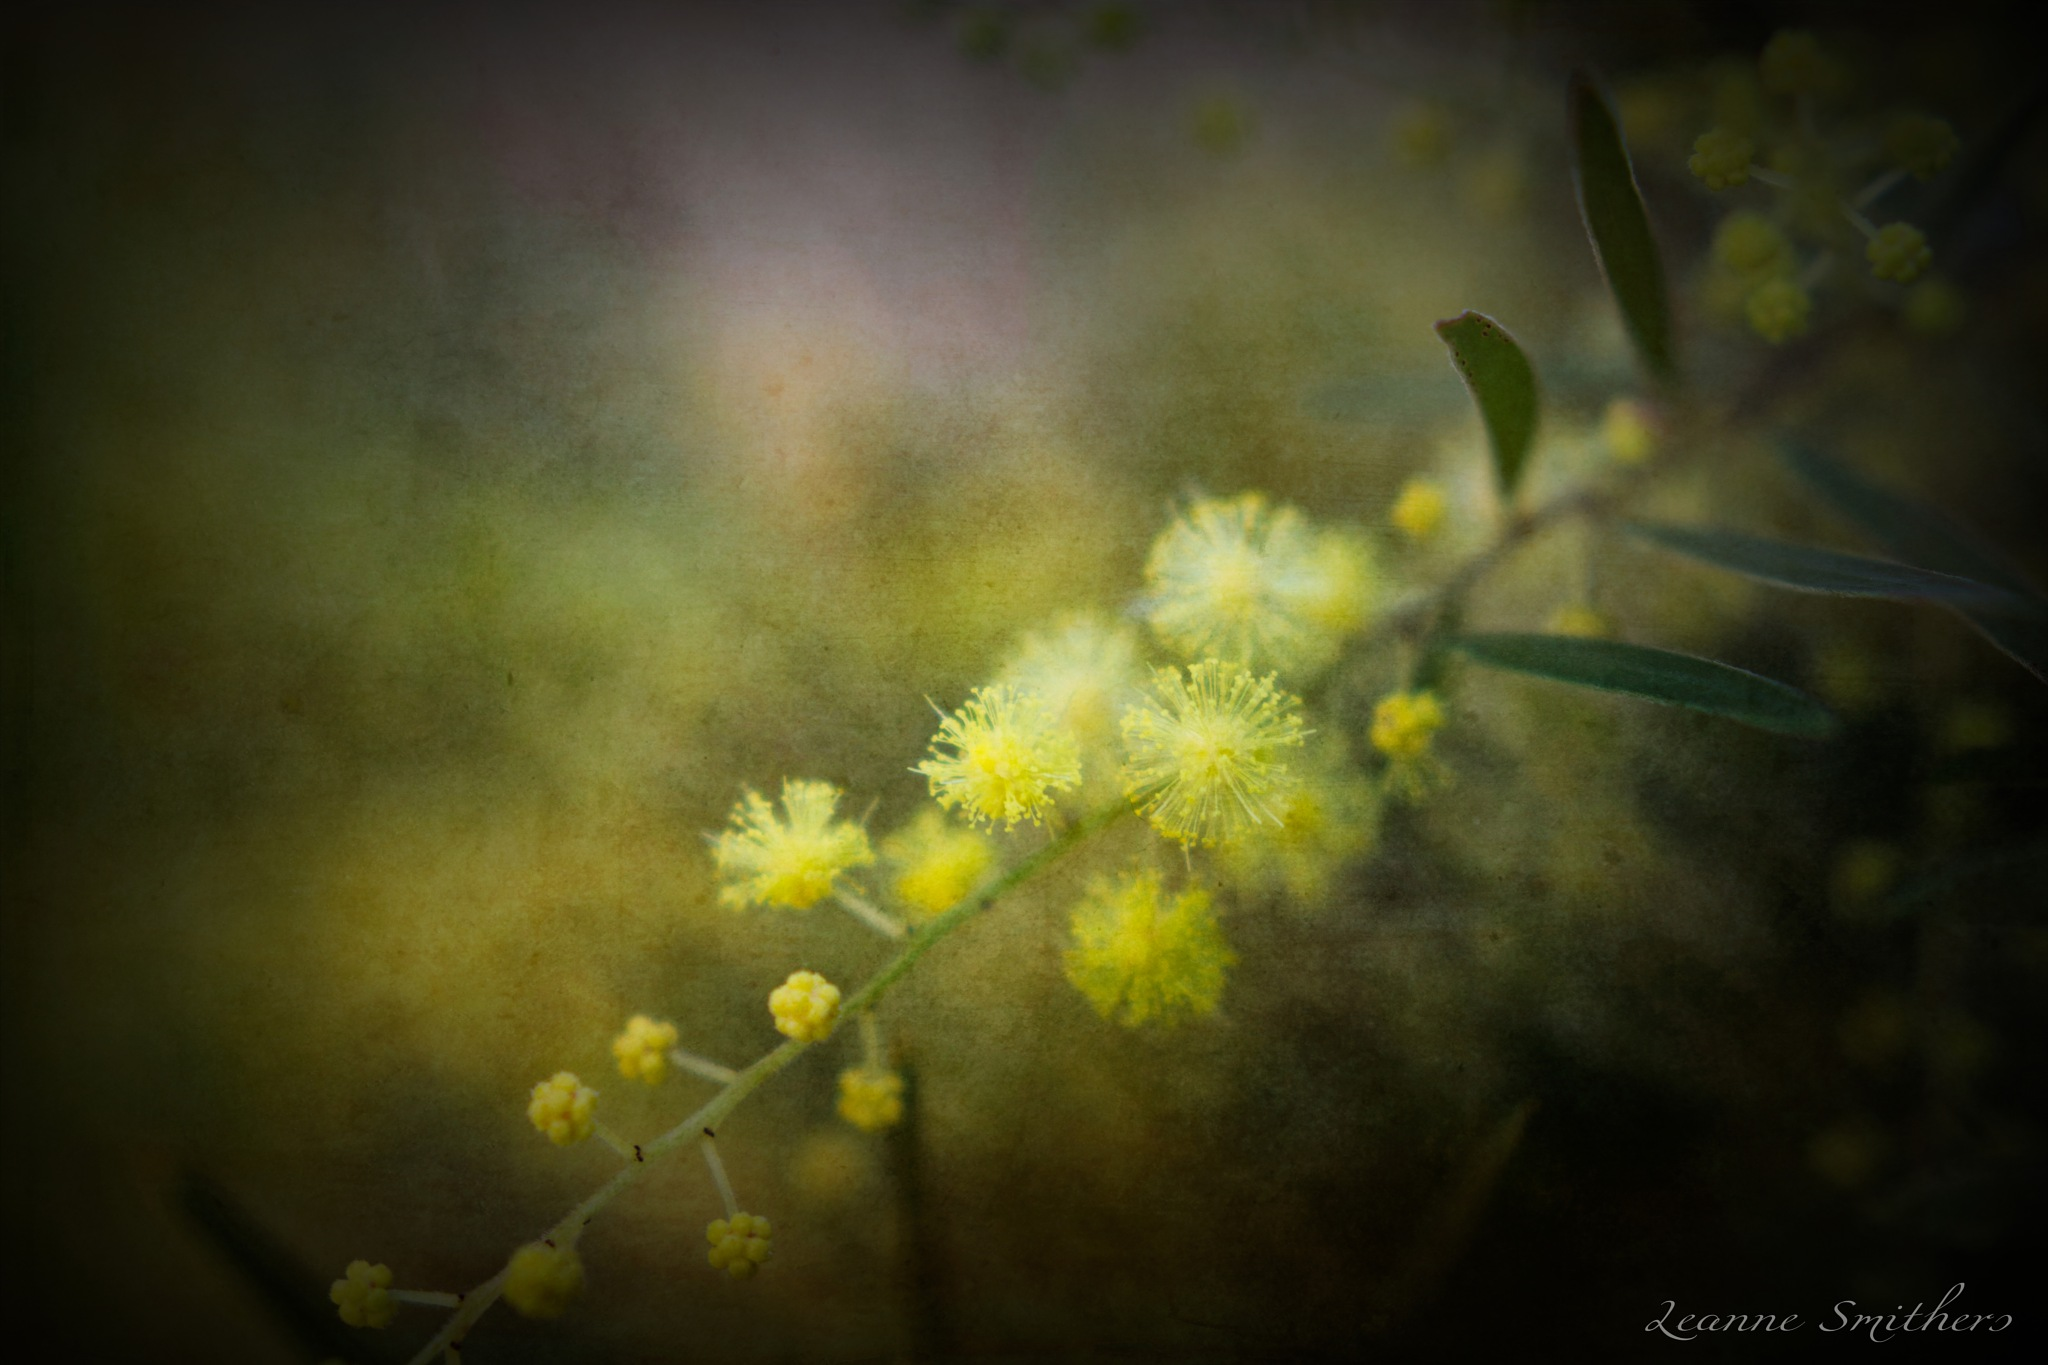 Spring is Coming by Leanne Smithers